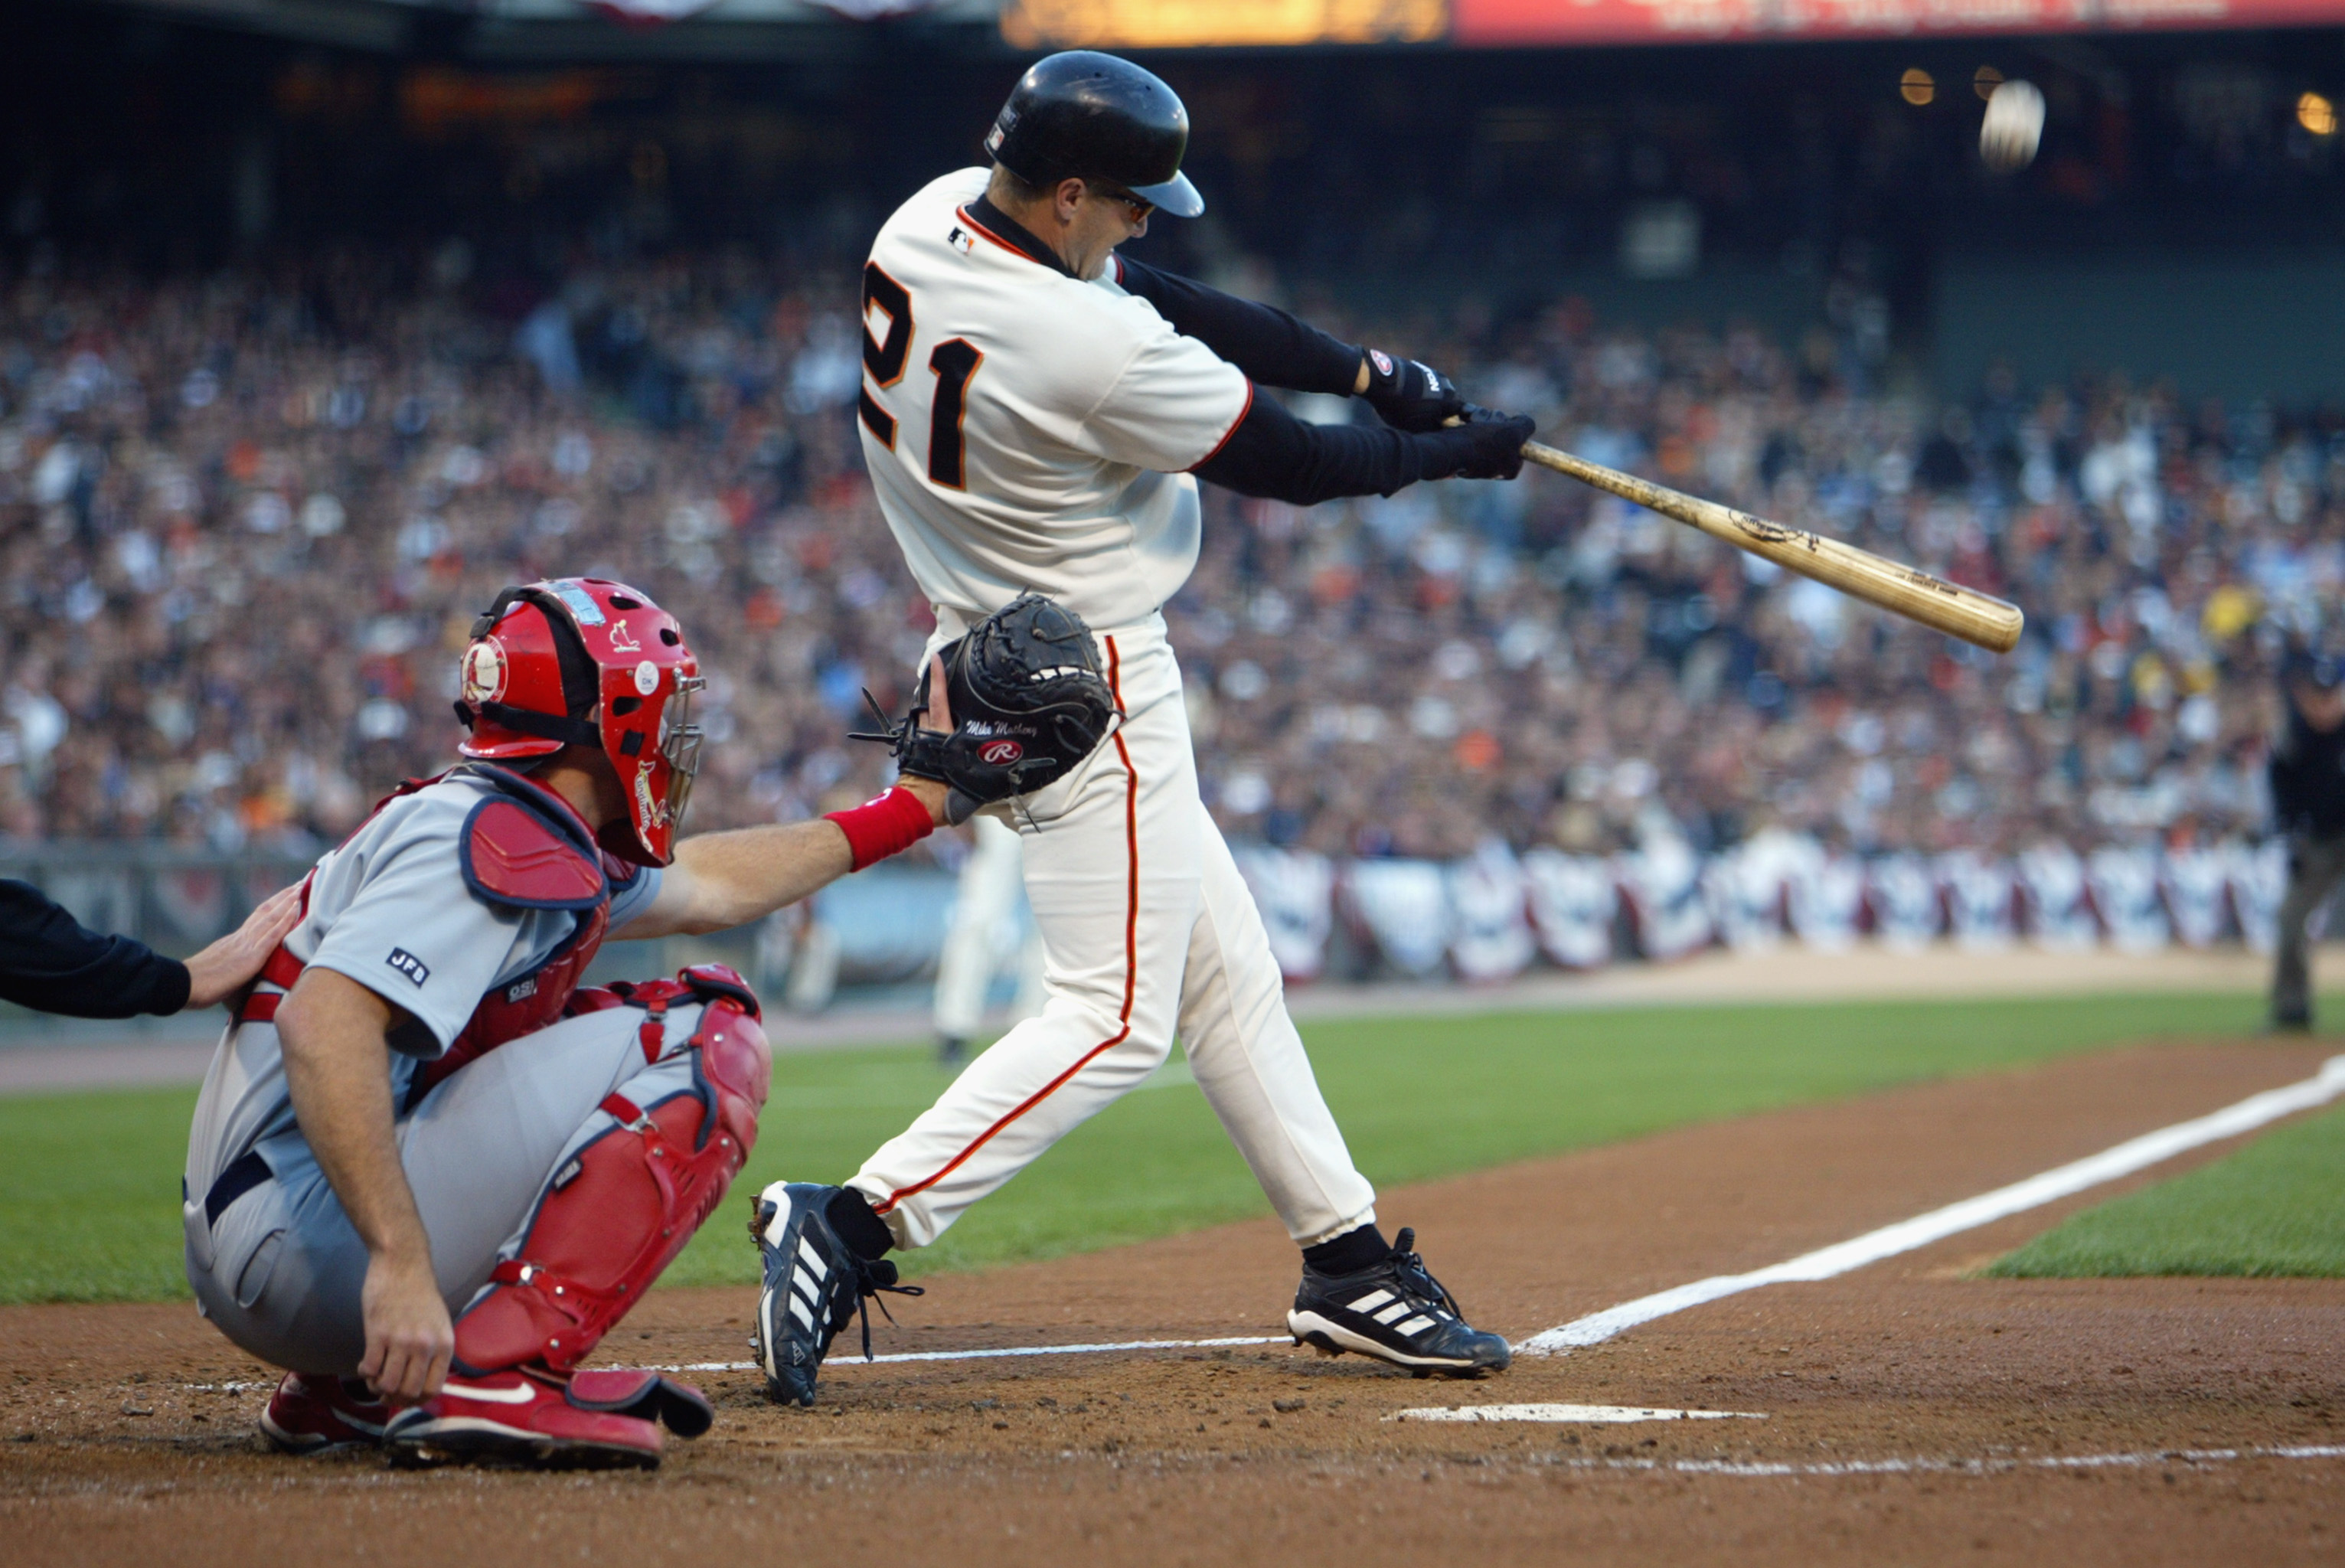 SAN FRANCISCO - OCTOBER 14:  Second baseman Jeff Kent #21 of the San Francisco Giants pops the ball up during game five of the National League Championship Series against the St. Louis Cardinals on October 14, 2002 at Pacific Bell Park in San Francisco, C